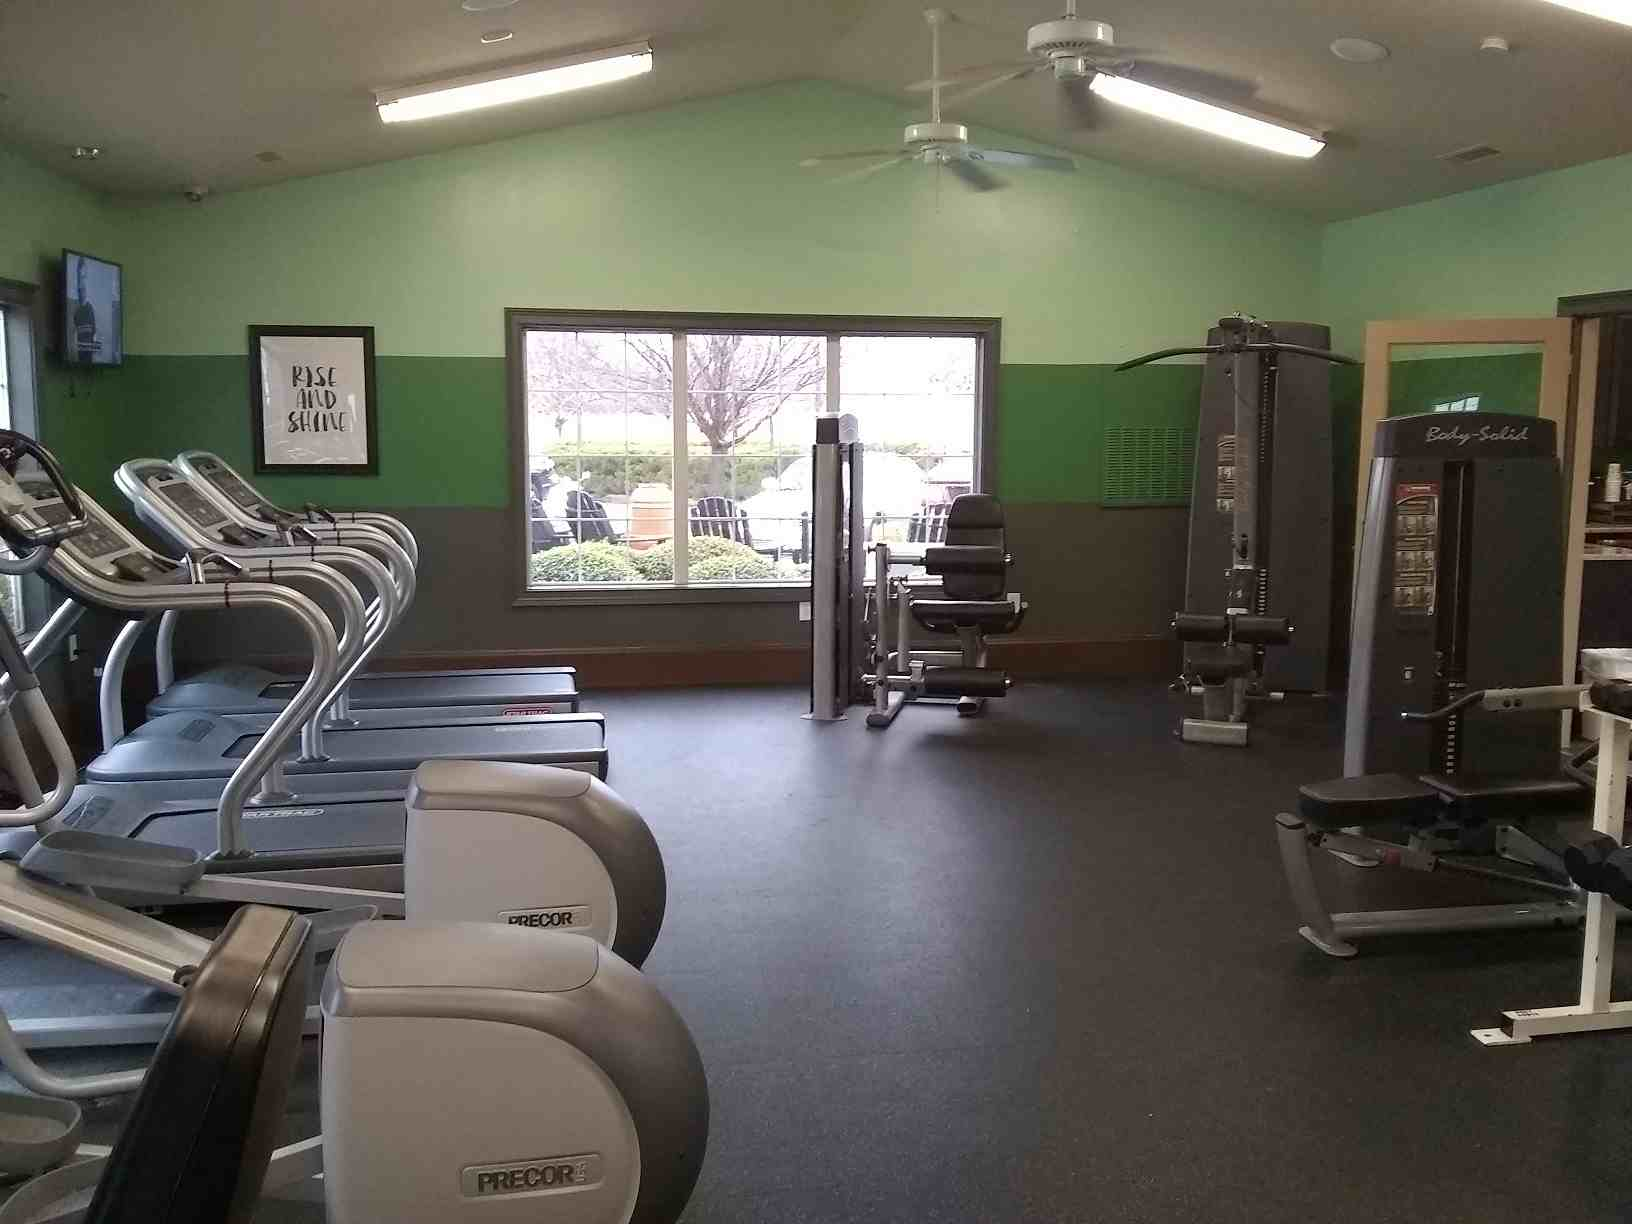 The-Spectrum-Fayetteville-AR-Gym-2-Unilodgers